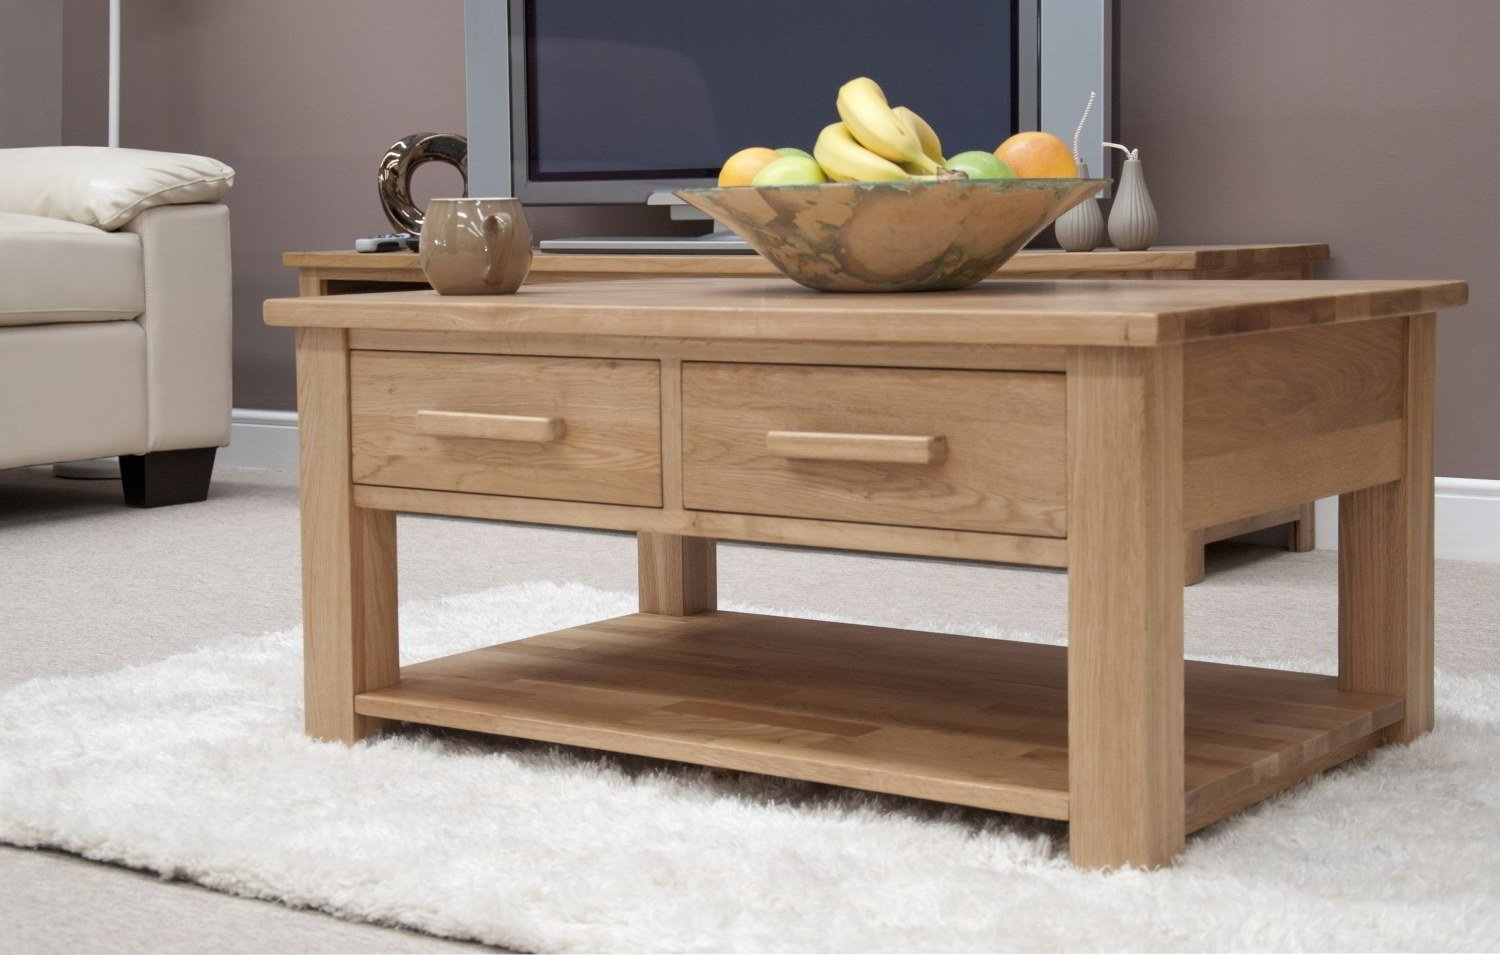 Eton solid oak furniture storage coffee table with drawers amazon eton solid oak furniture storage coffee table with drawers amazon kitchen home geotapseo Image collections